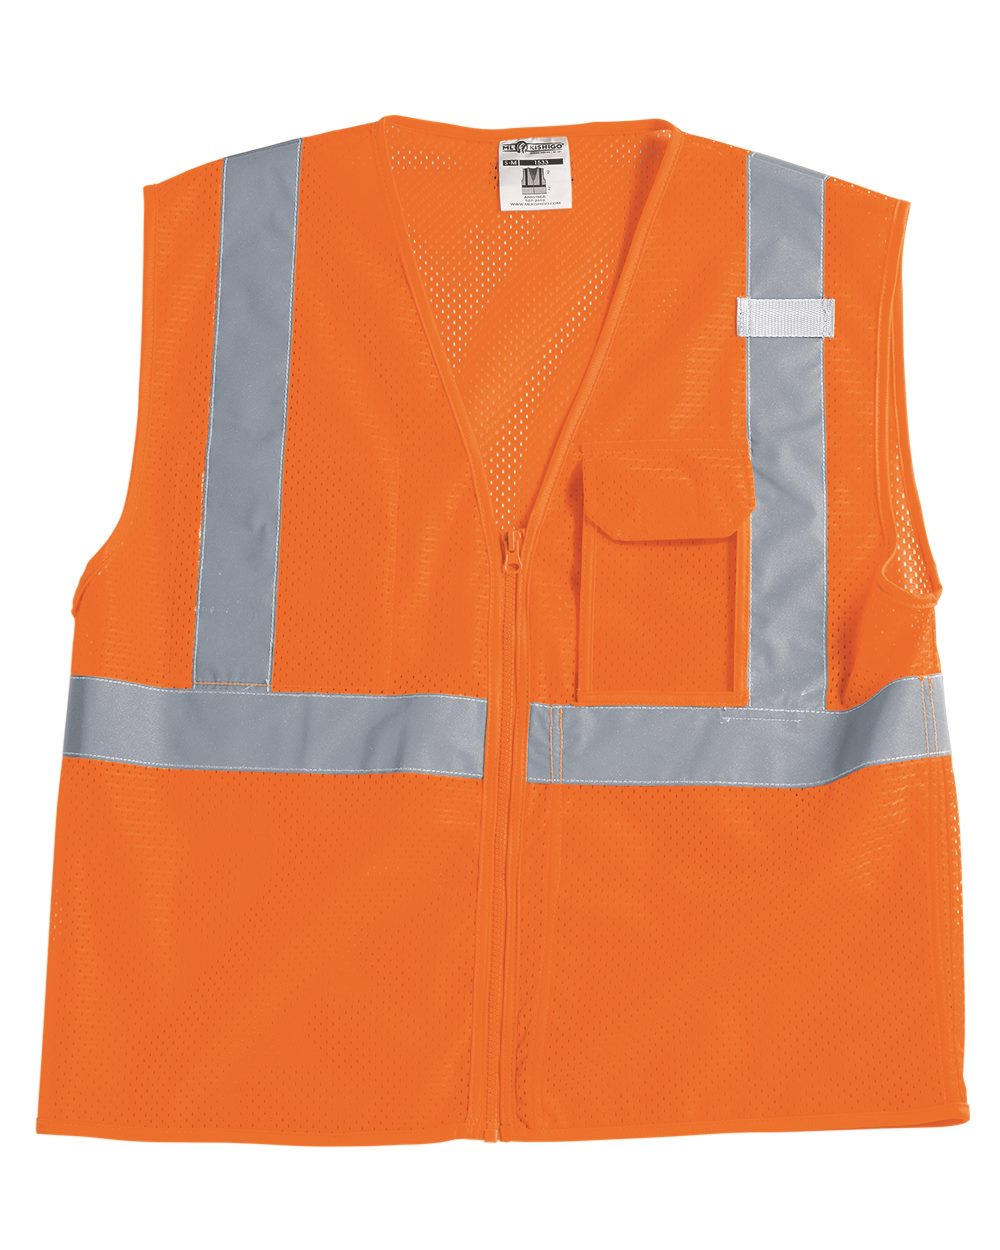 ML Kishigo 1532-1533 - Clear ID Vest with Zipper Closure